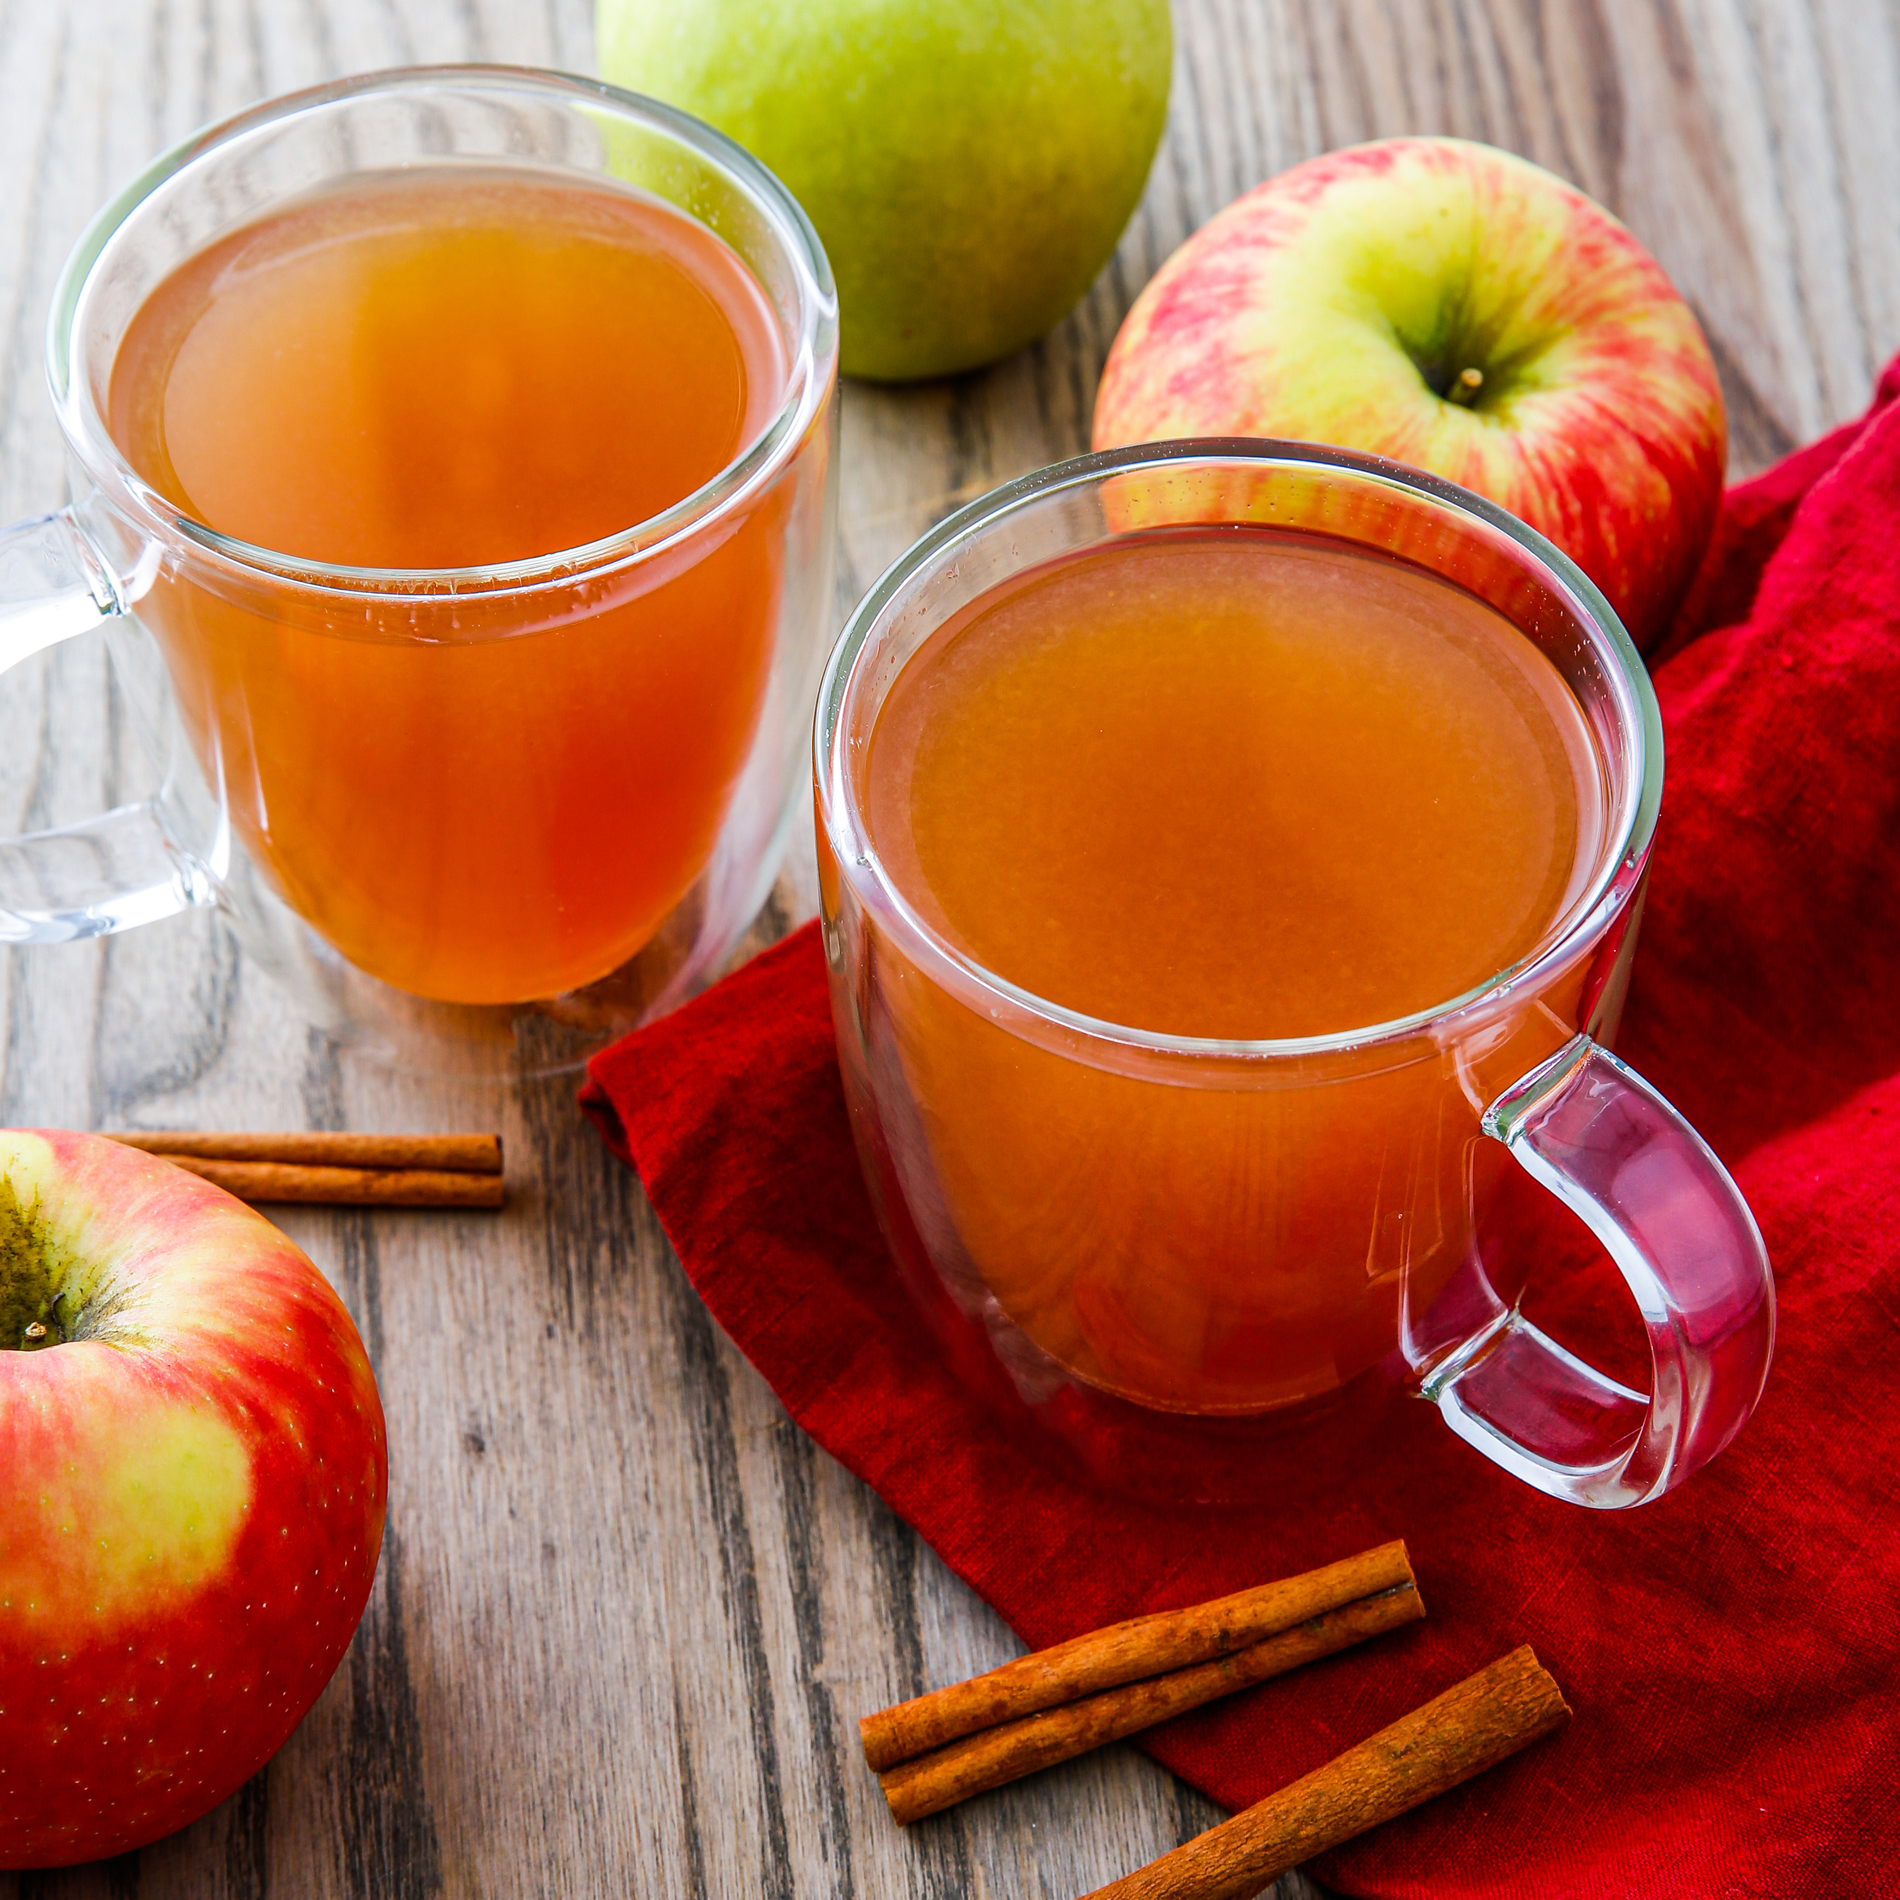 where to find apple cider in the grocery store